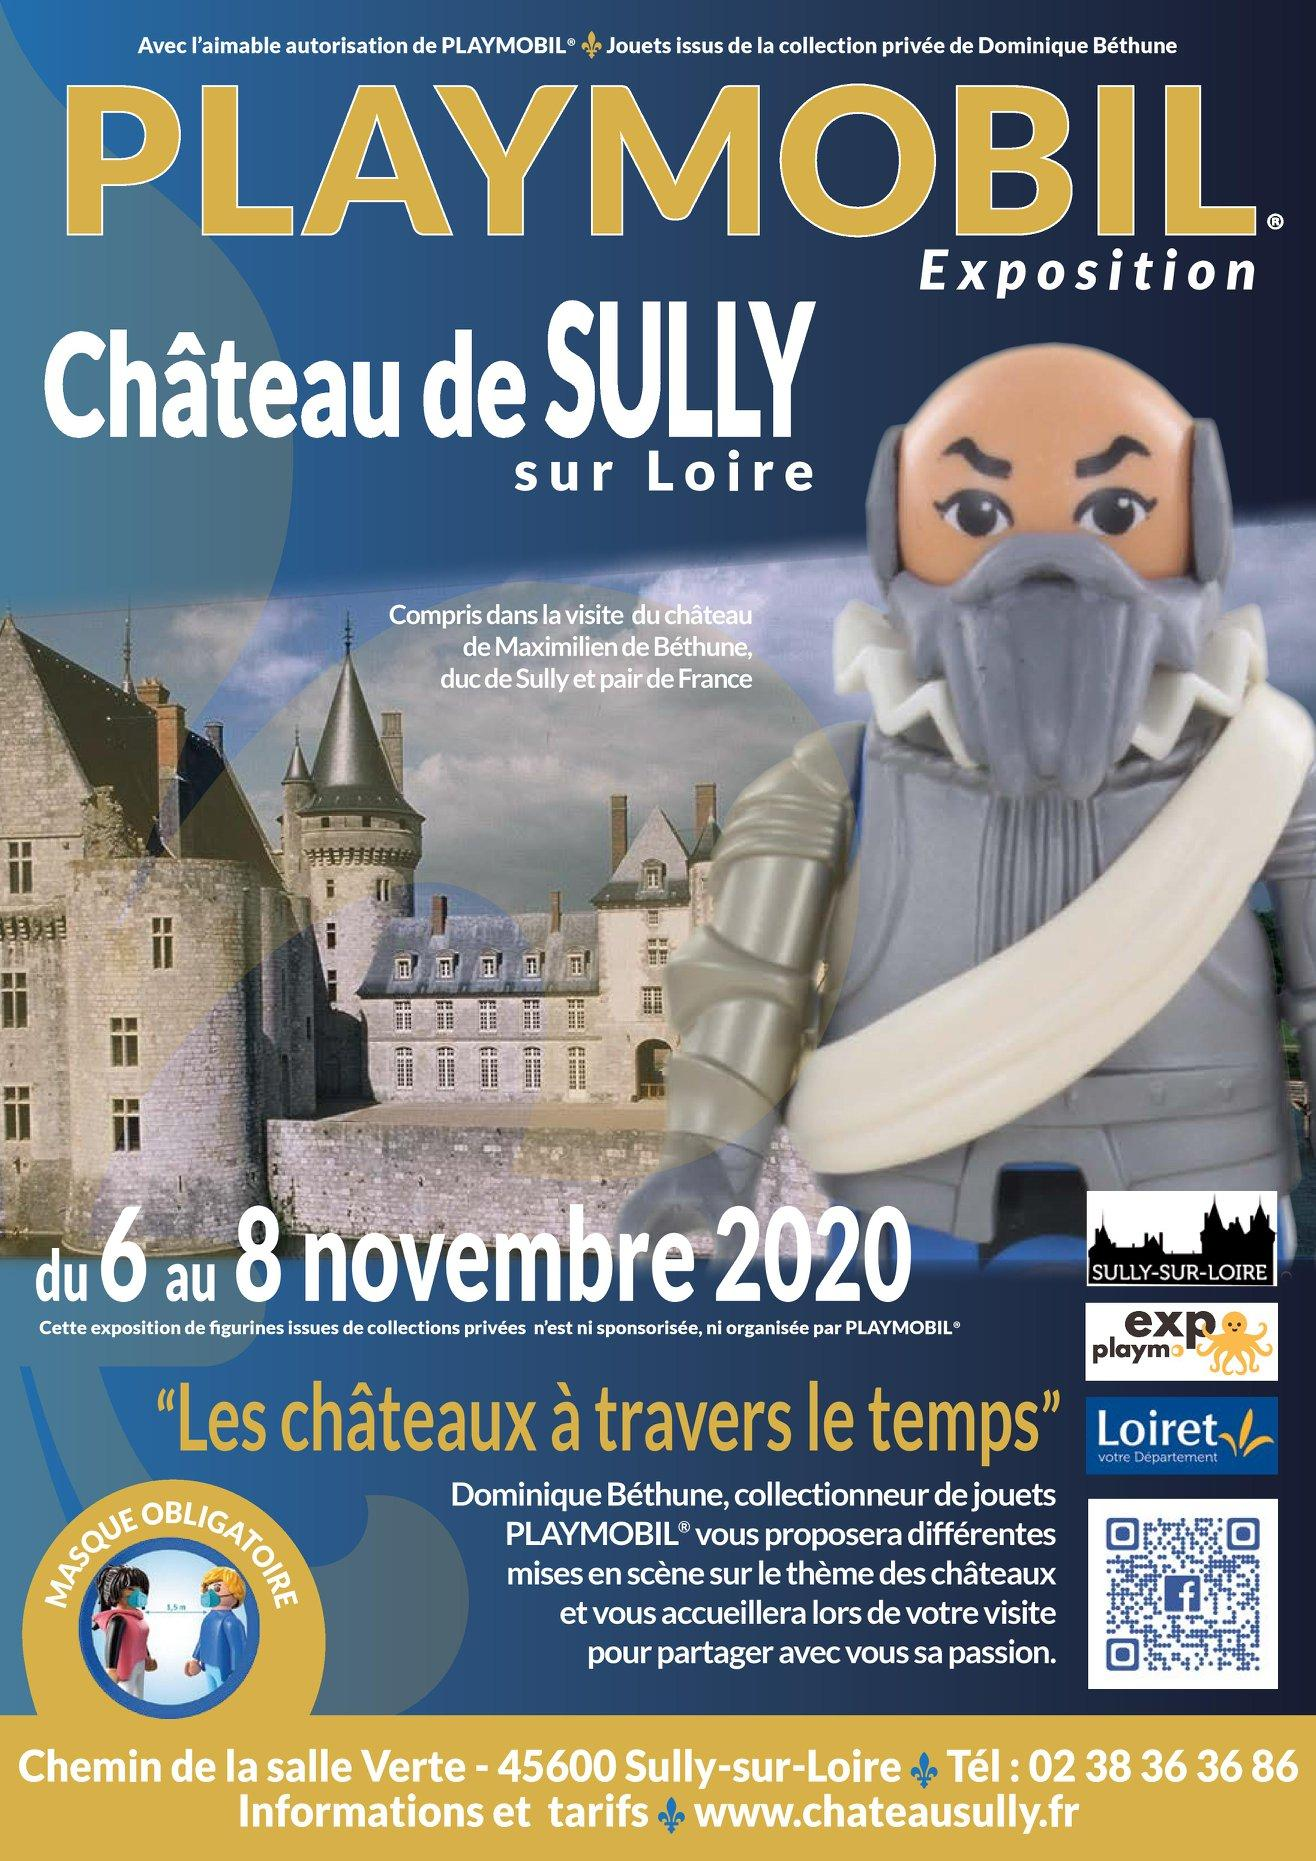 Affiche exposition playmobil chateau de sully 2020